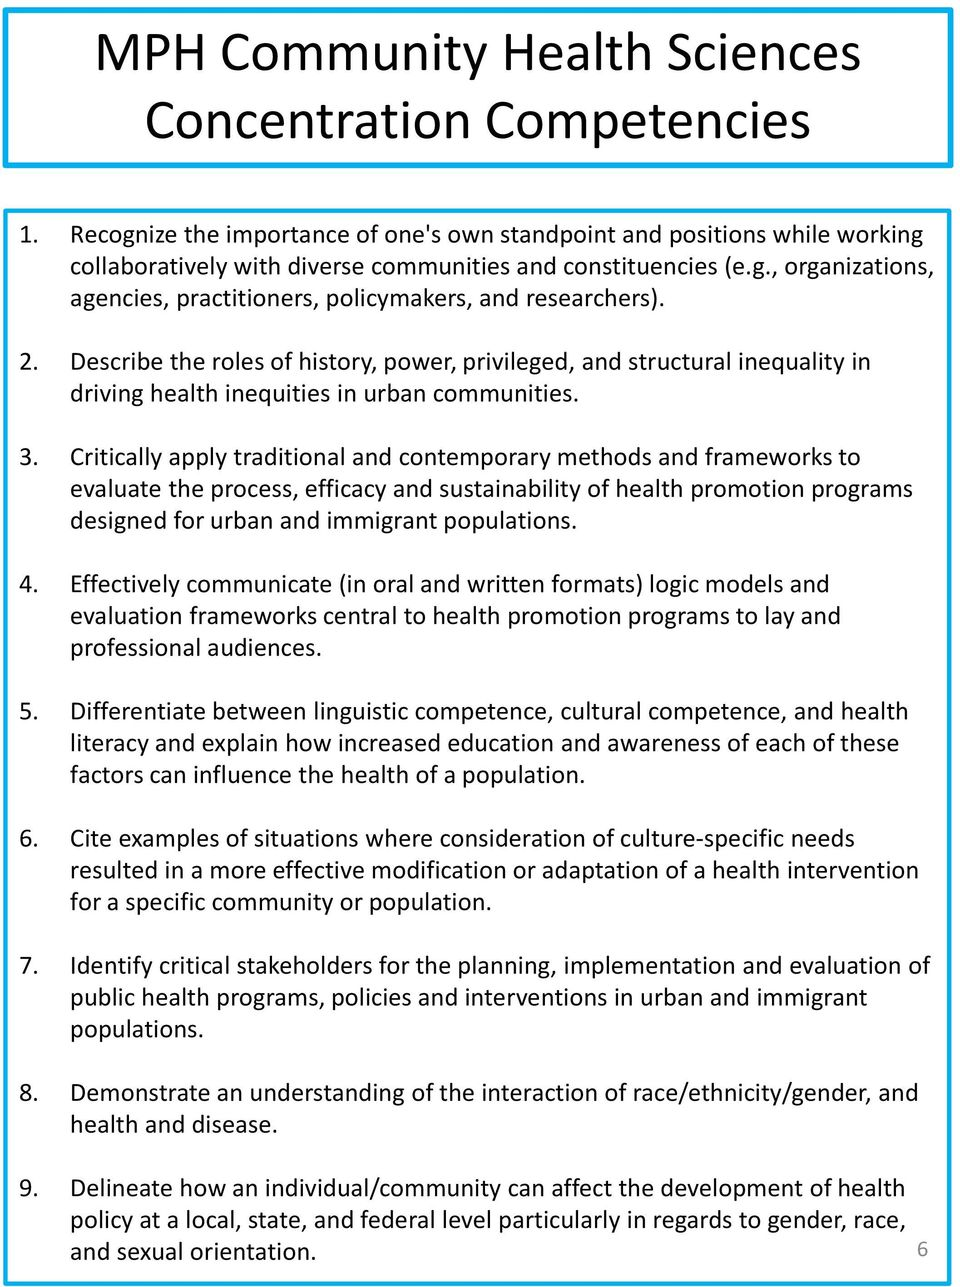 Critically apply traditional and contemporary methods and frameworks to evaluate the process, efficacy and sustainability of health promotion programs designed for urban and immigrant populations. 4.